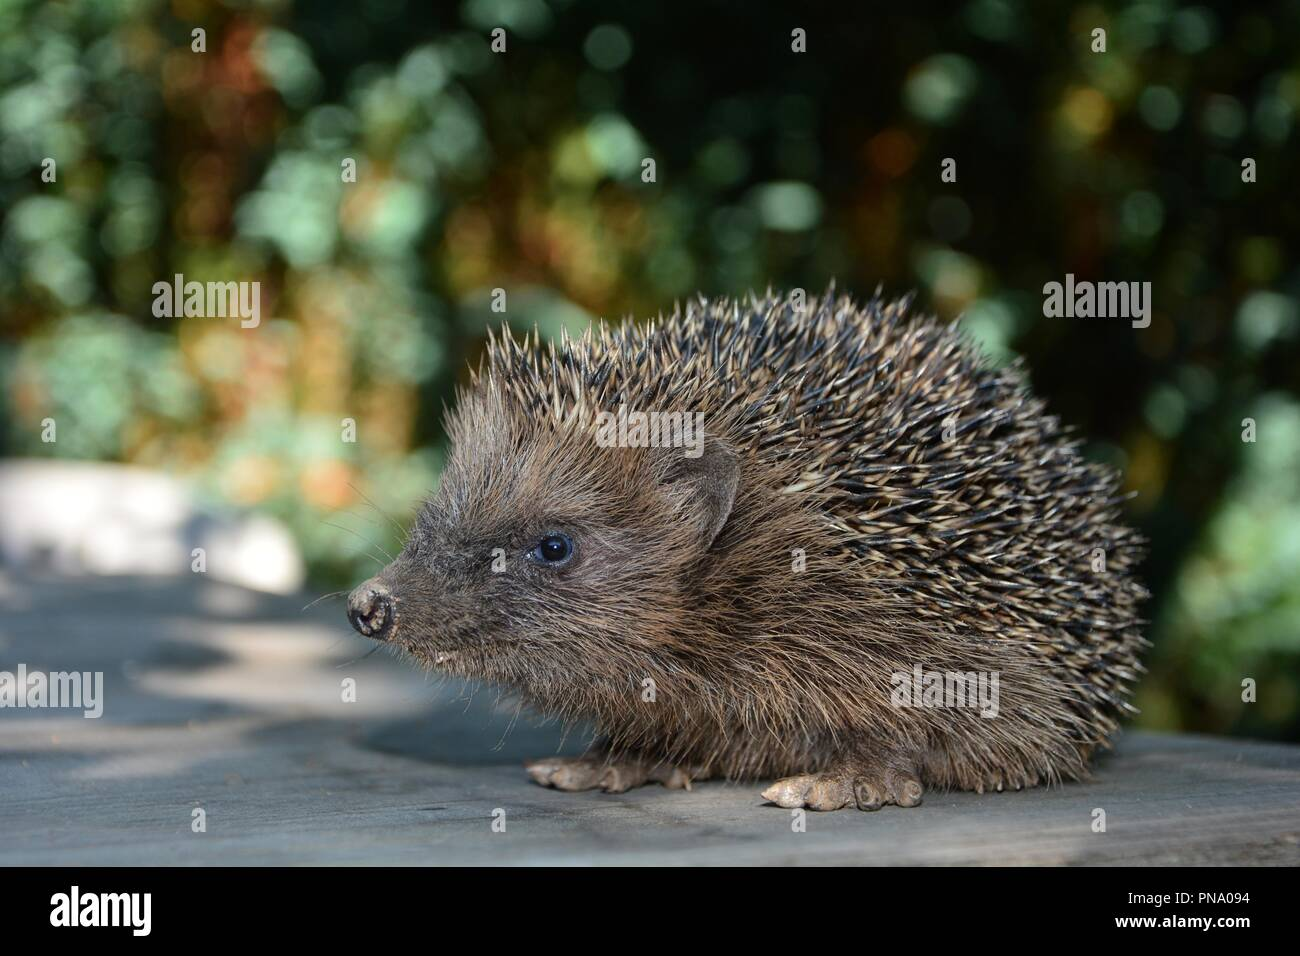 One cute Hedgehog  on wood in front of green nature - Stock Image